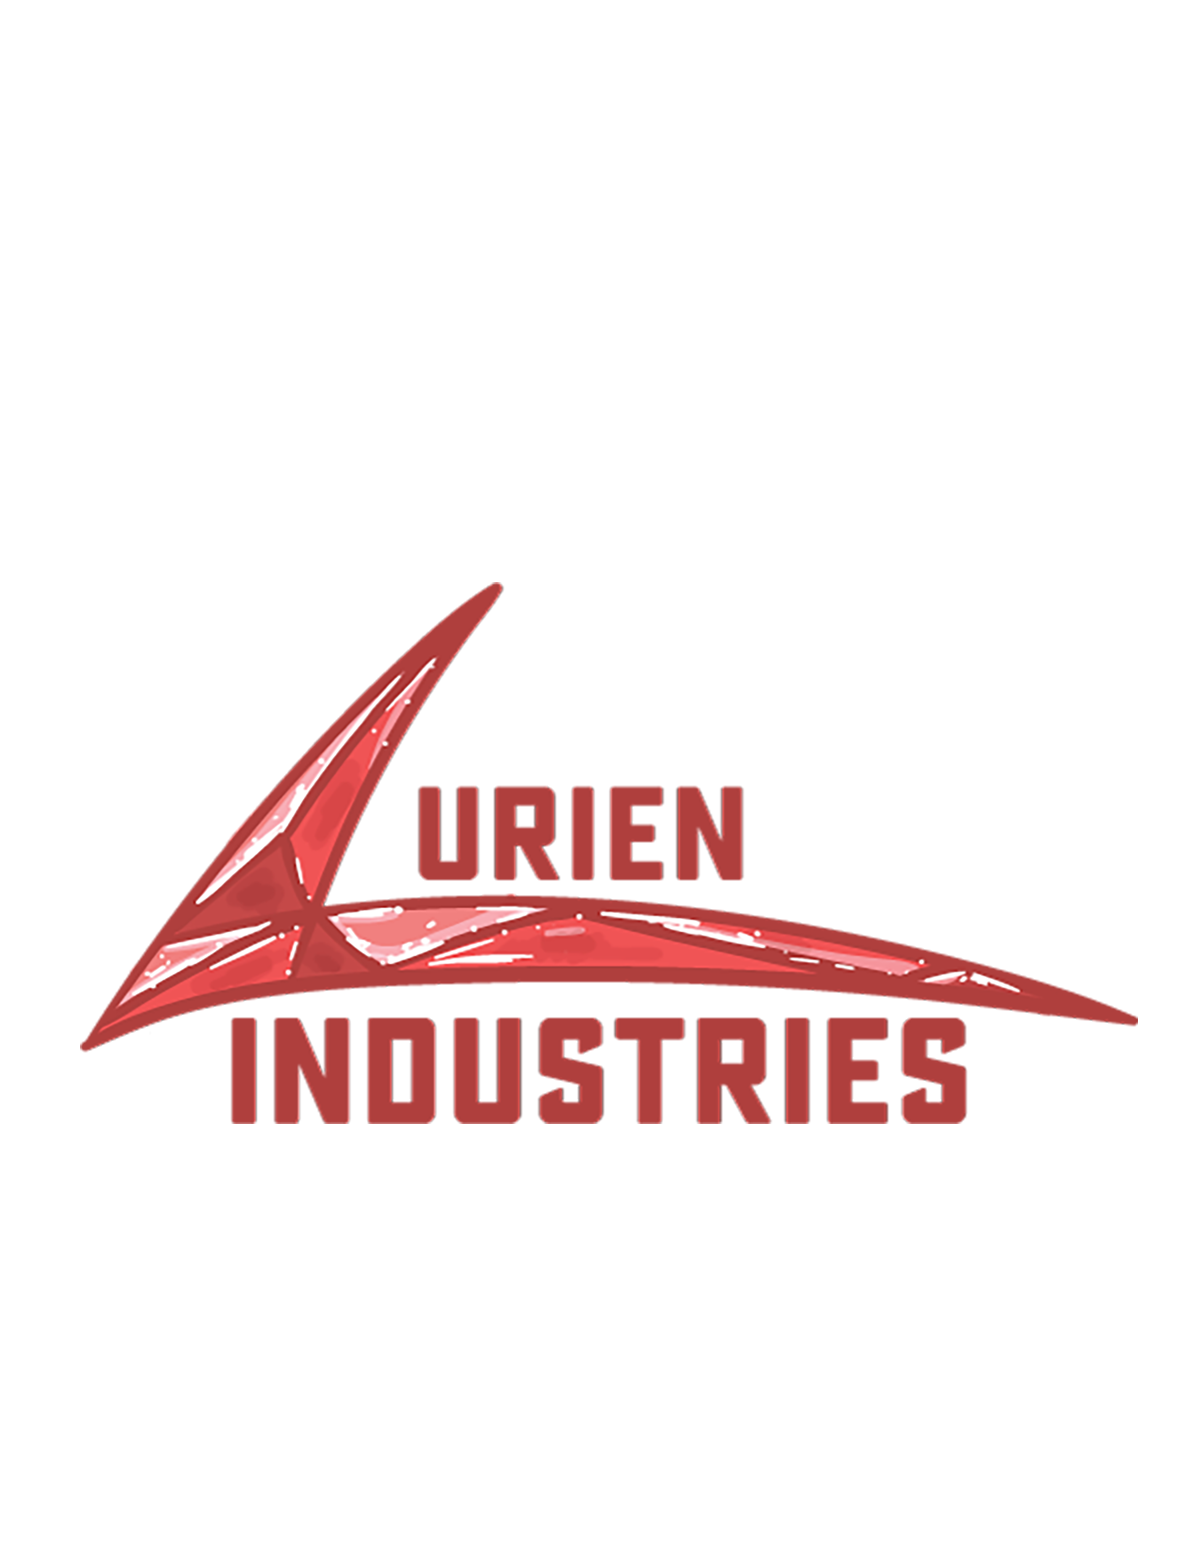 Lurien Industries and the Weapons Industrial Sector & 5e Vaedricarms